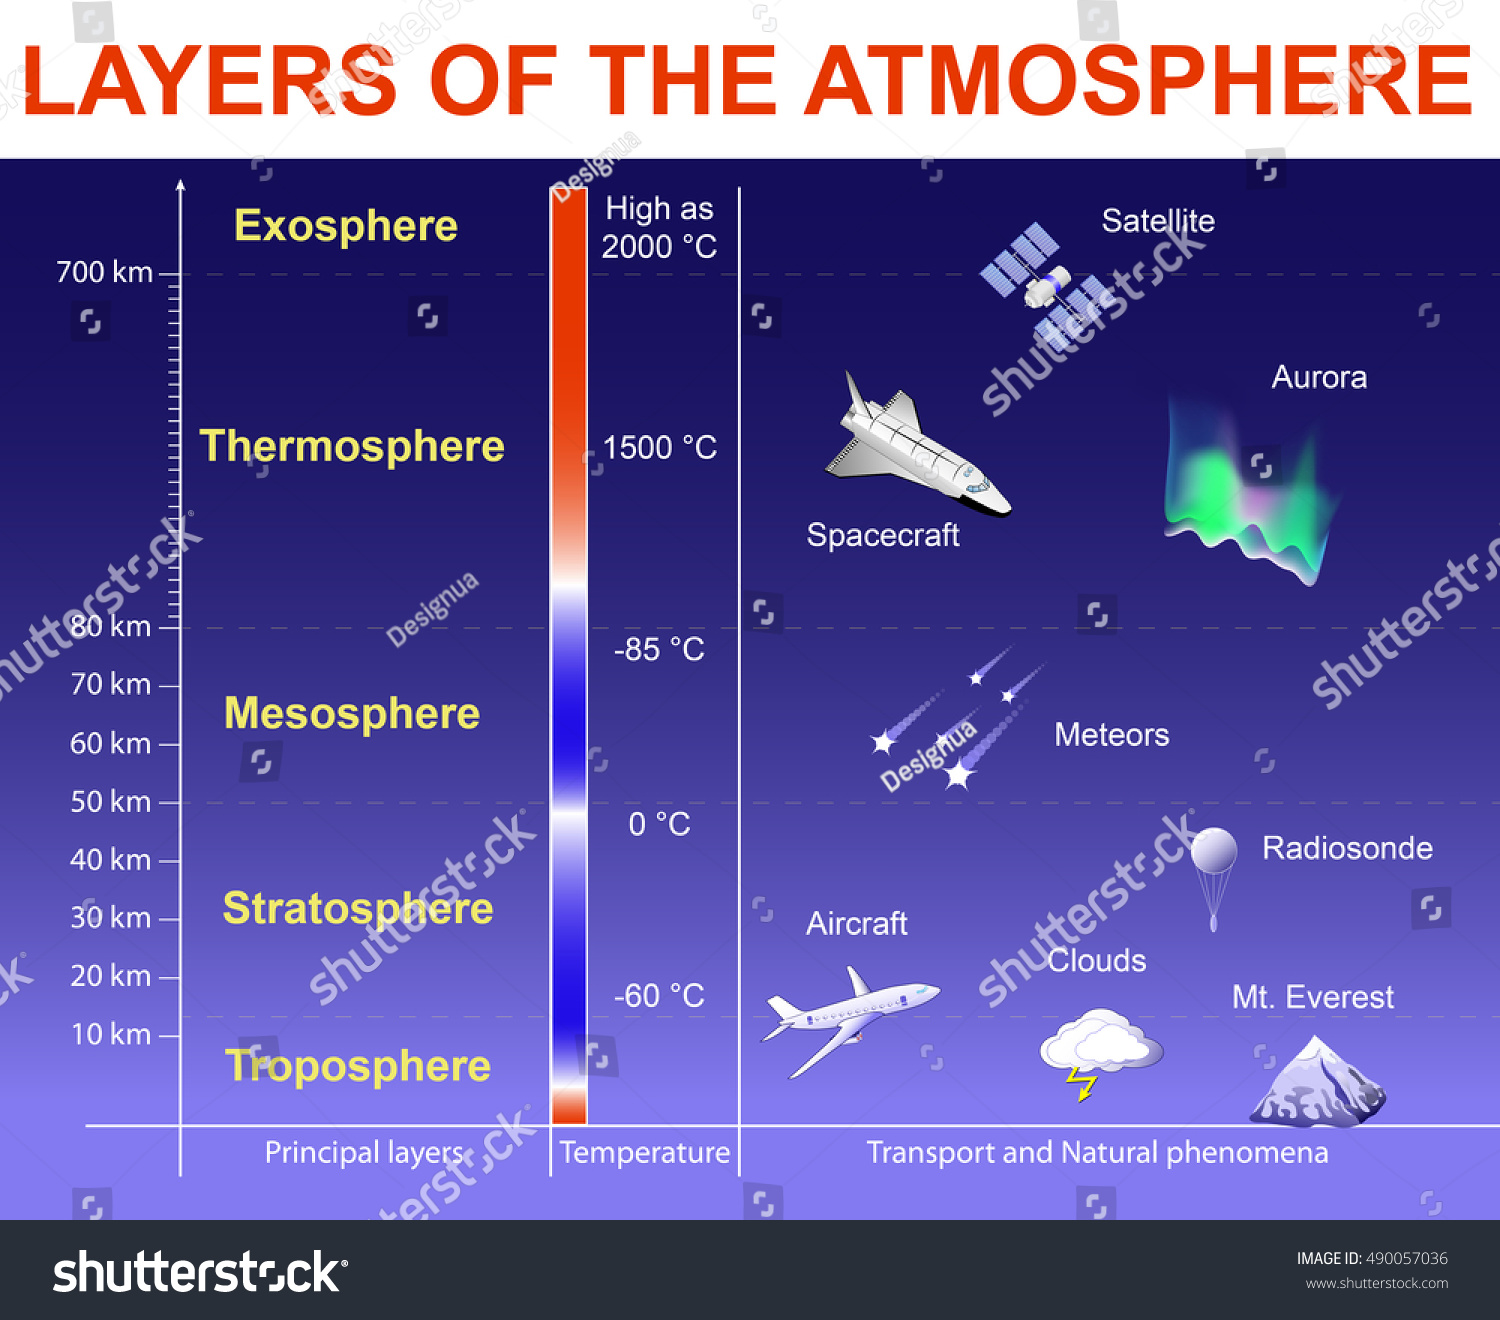 Layers Atmosphere Exosphere Thermosphere Mesosphere Stratosphere 490057036 on Fifth Grade Science Of Natural